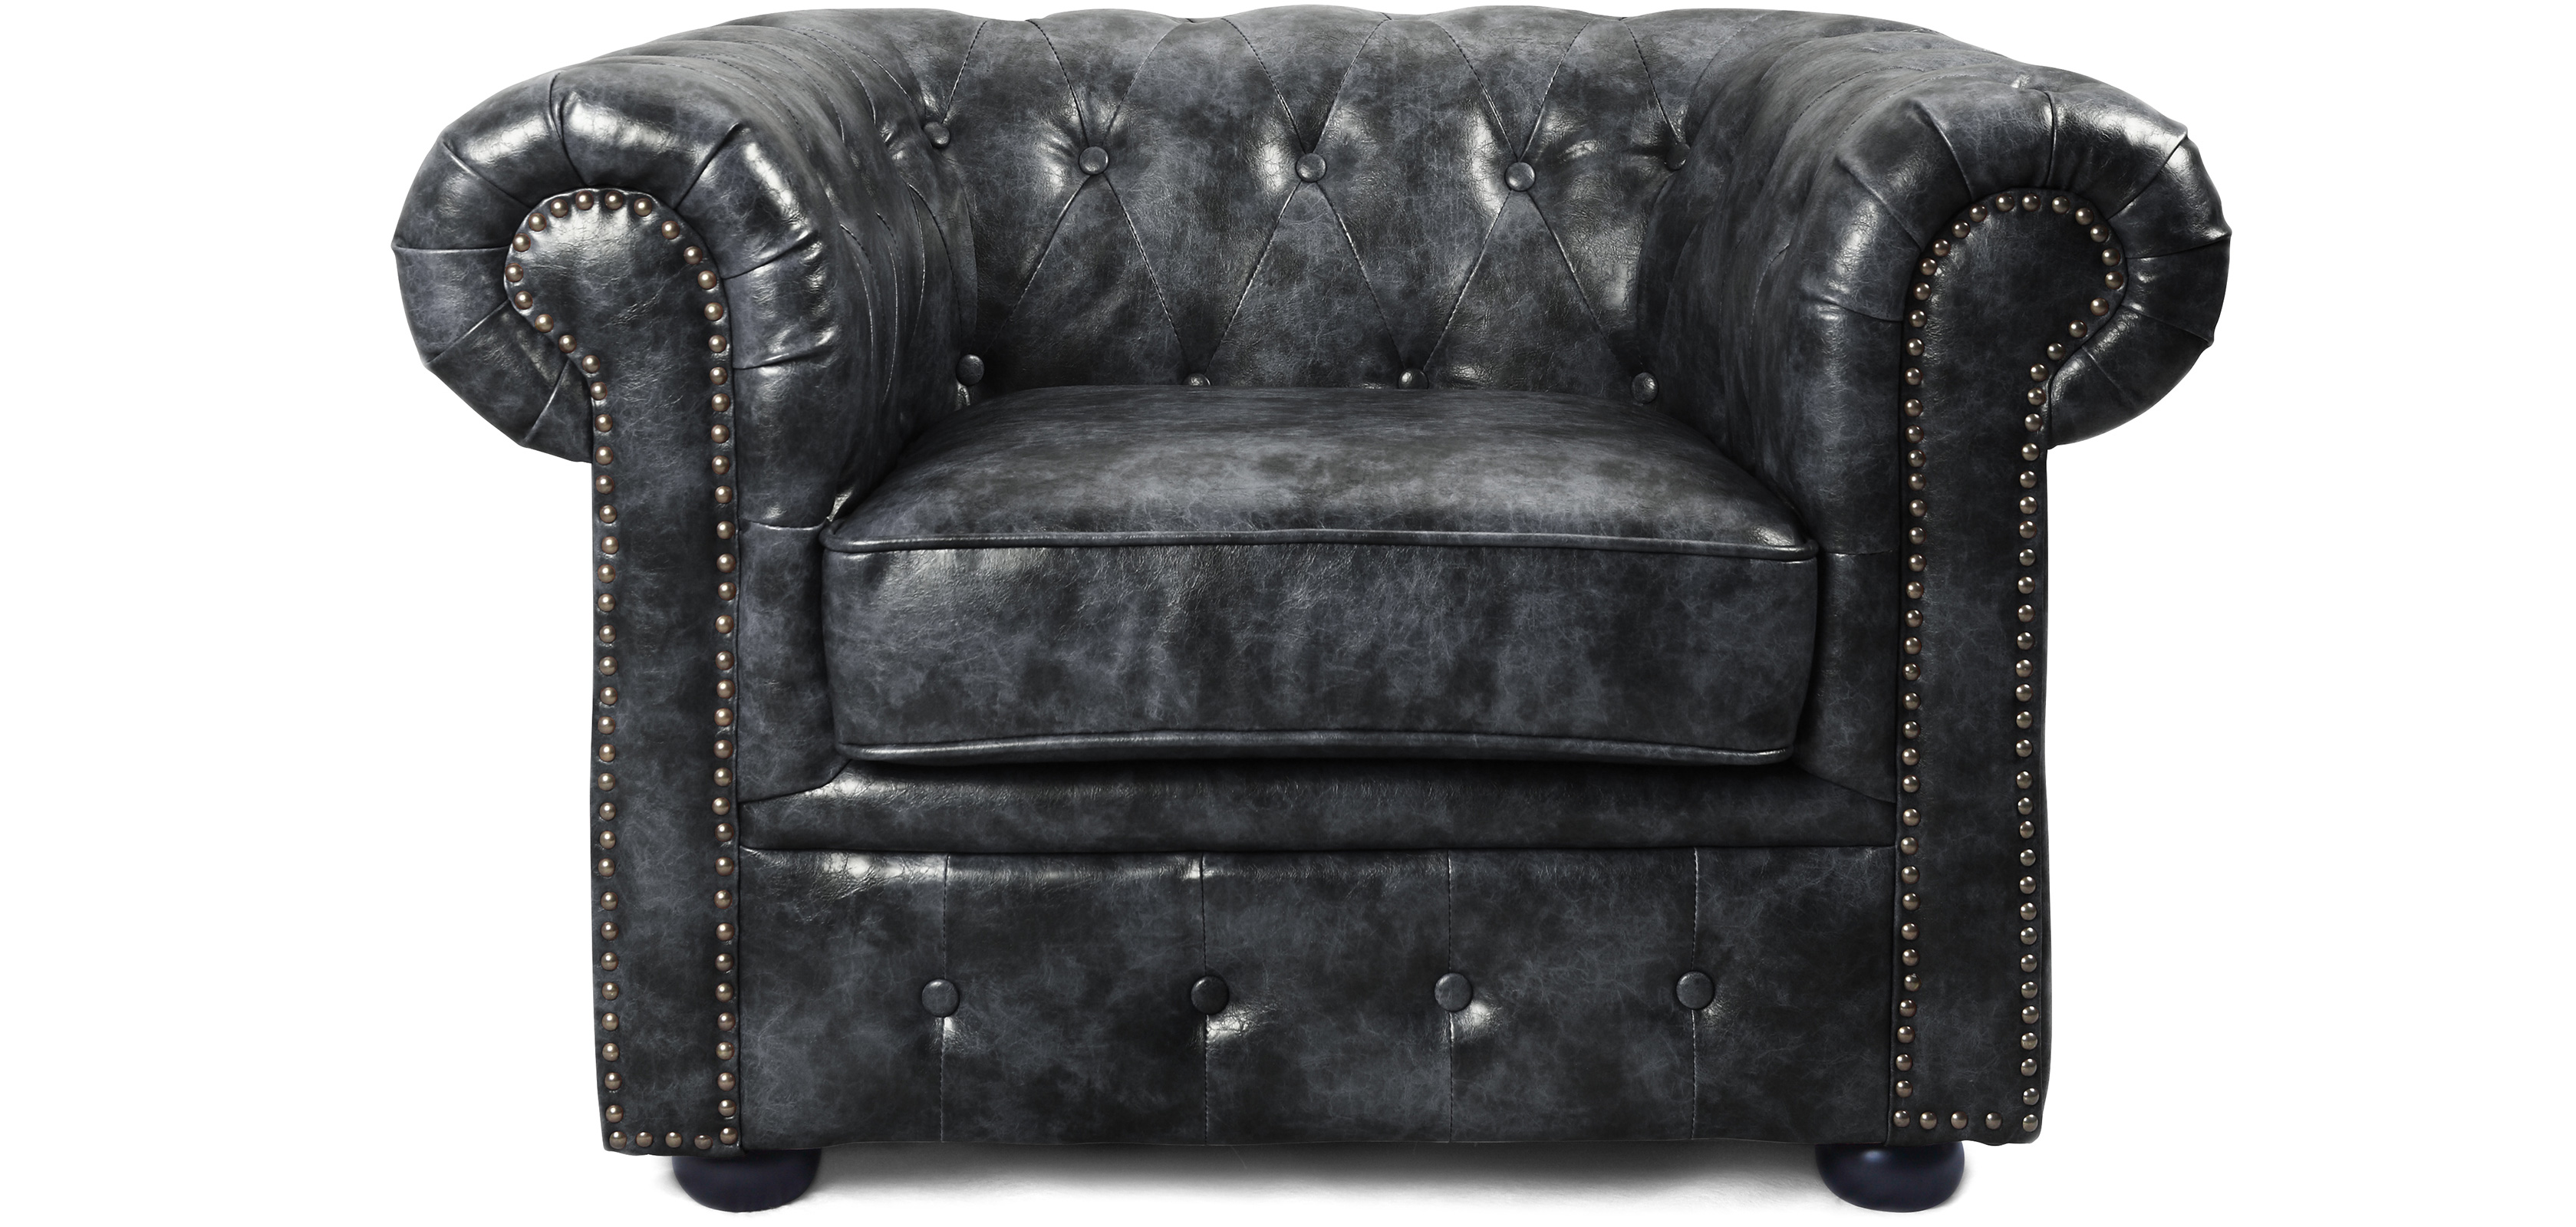 fauteuil chesterfield vintage cuir premium pas cher. Black Bedroom Furniture Sets. Home Design Ideas